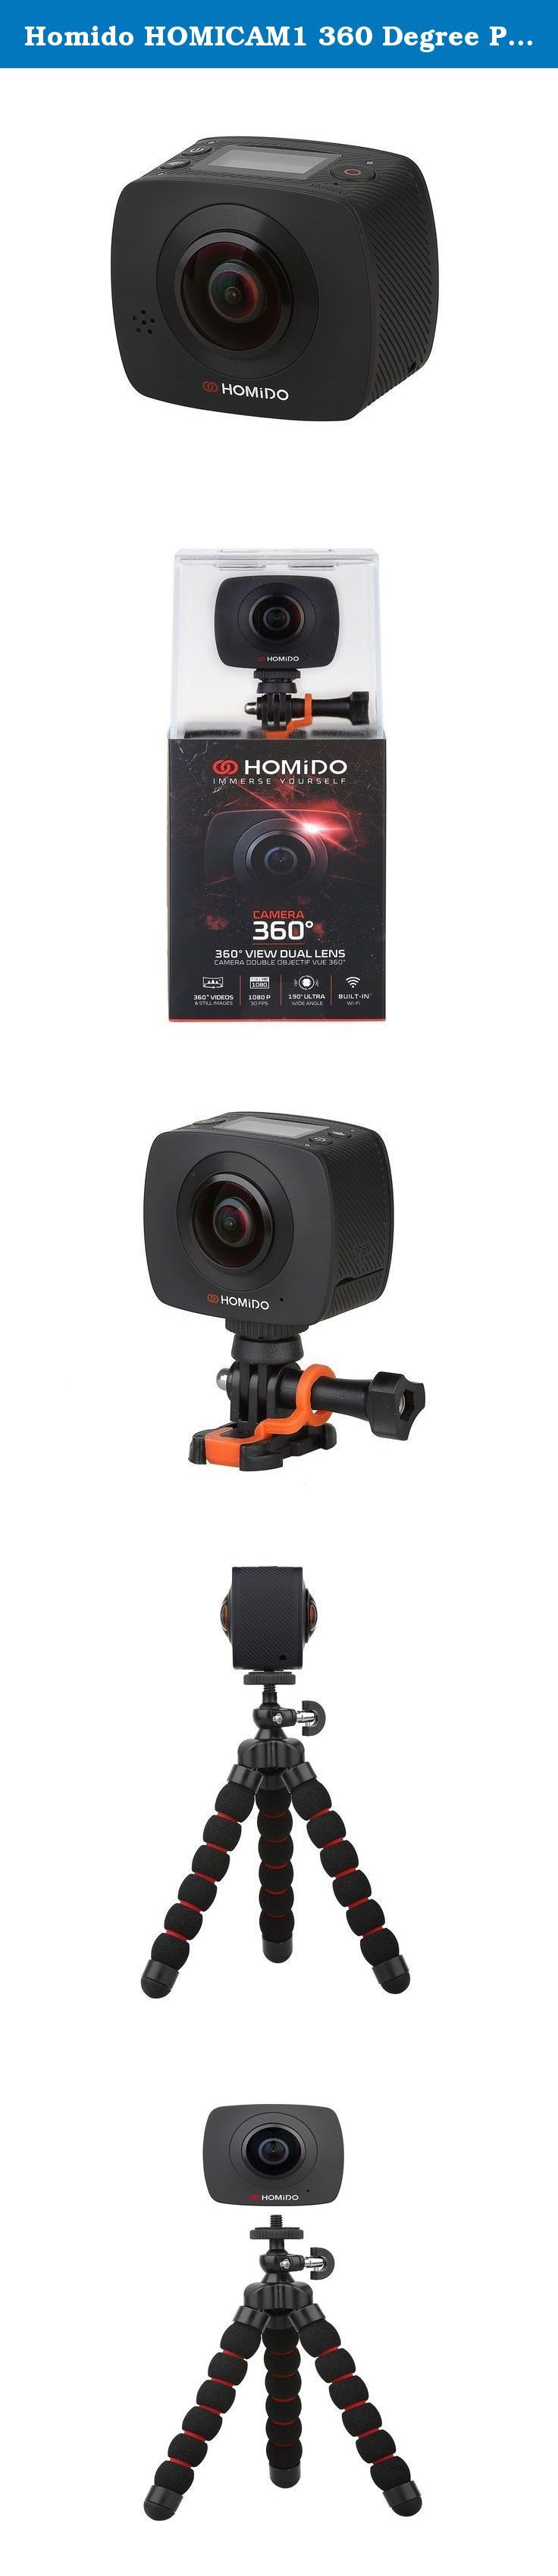 Homido HOMICAM1 360 Degree Panoramic VR Camera with Dual Spherical Lens 30fps 1080p full-HD Wi-Fi Digital Photography Video Capture Action Camera. TECHNICAL DATA: Camera Sensor: -Model: OV4689*2 -Standard:4.0M CMOS*2 Lens: Aperture: F 2.0 View Angle: 220°*2 Focal Length: F=1.1mm Fixed focus Exposure Control:Auto LCD Display: Display Size: 0.96'' Resolution: 128*64 Pixels File Format: Movie: H.264 (MOV), 1920 * 960p @ 30FPS Photo: JPG 3008 * 1504p Real Time Clock (RTC): Yes USB cable…